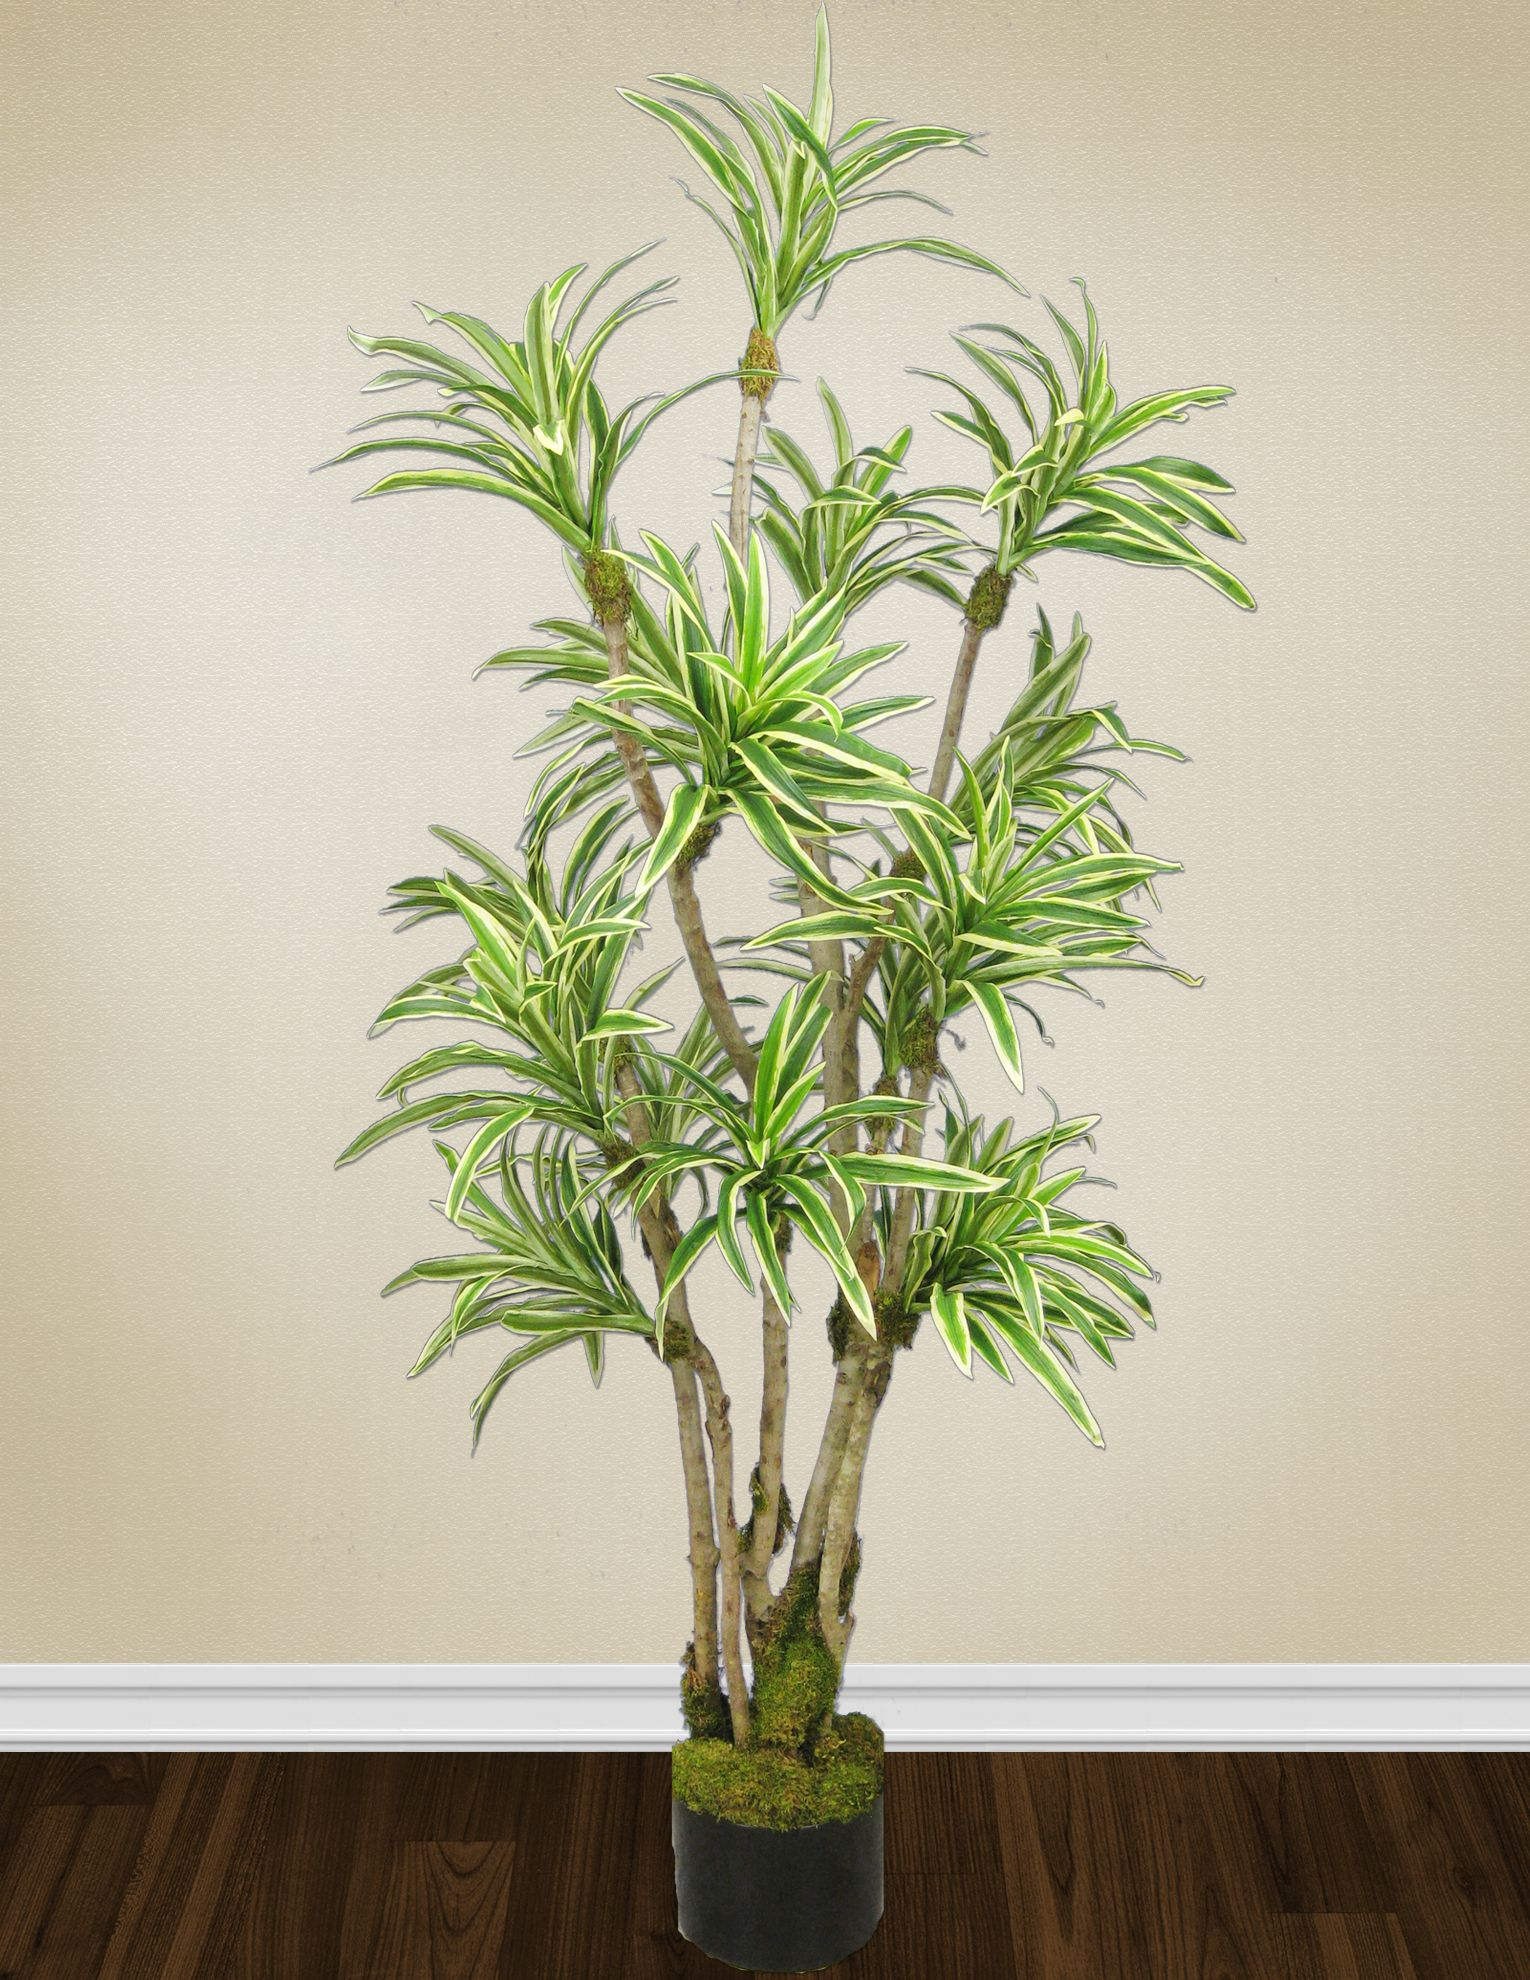 A Variegated Yucca hand-crafted by the Aldik Home's talented tree-makers. Visit www.aldikhome.com for more information.